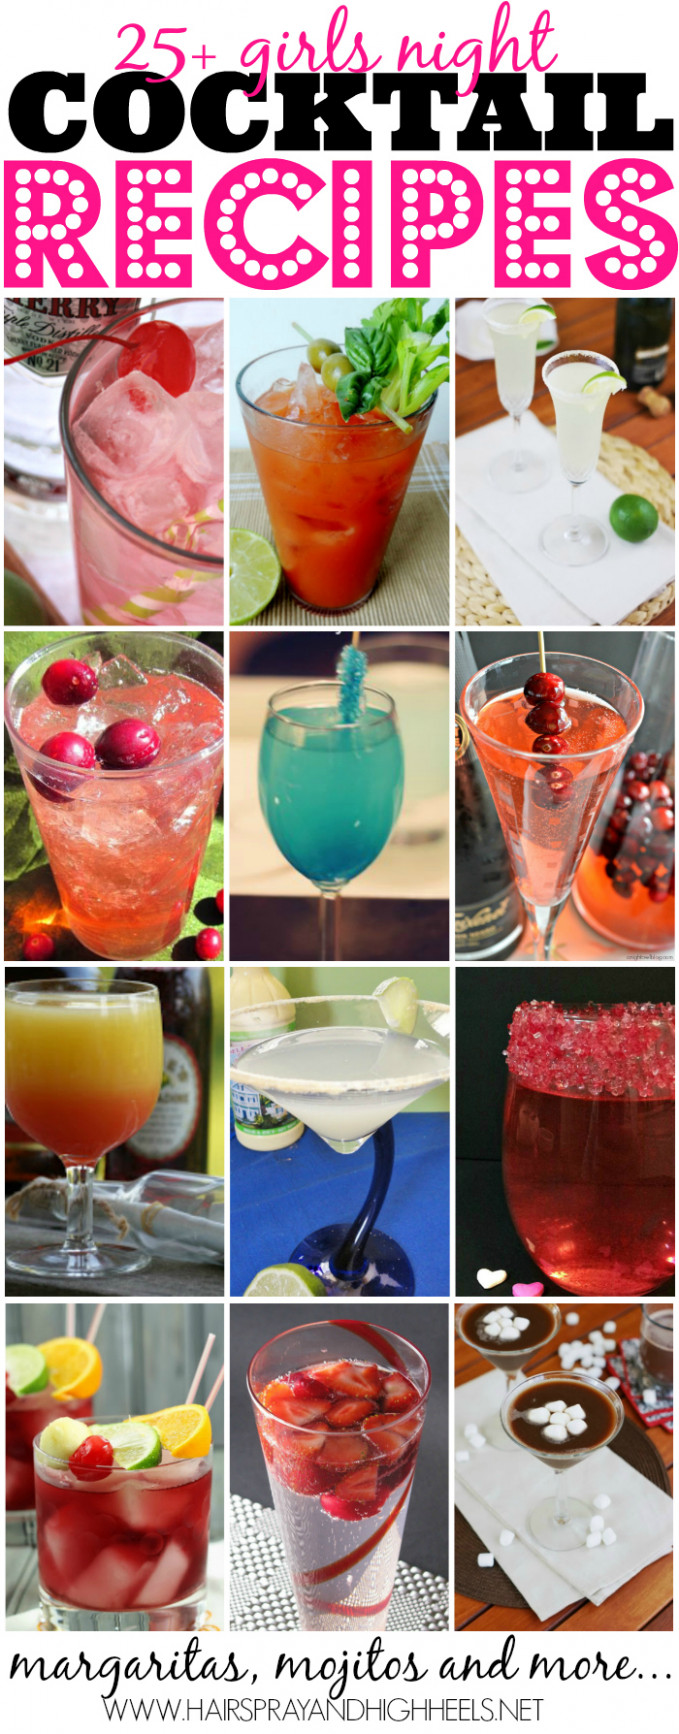 25 Girls Night Cocktail Recipes - Hairspray and Highheels - ladies night food recipes